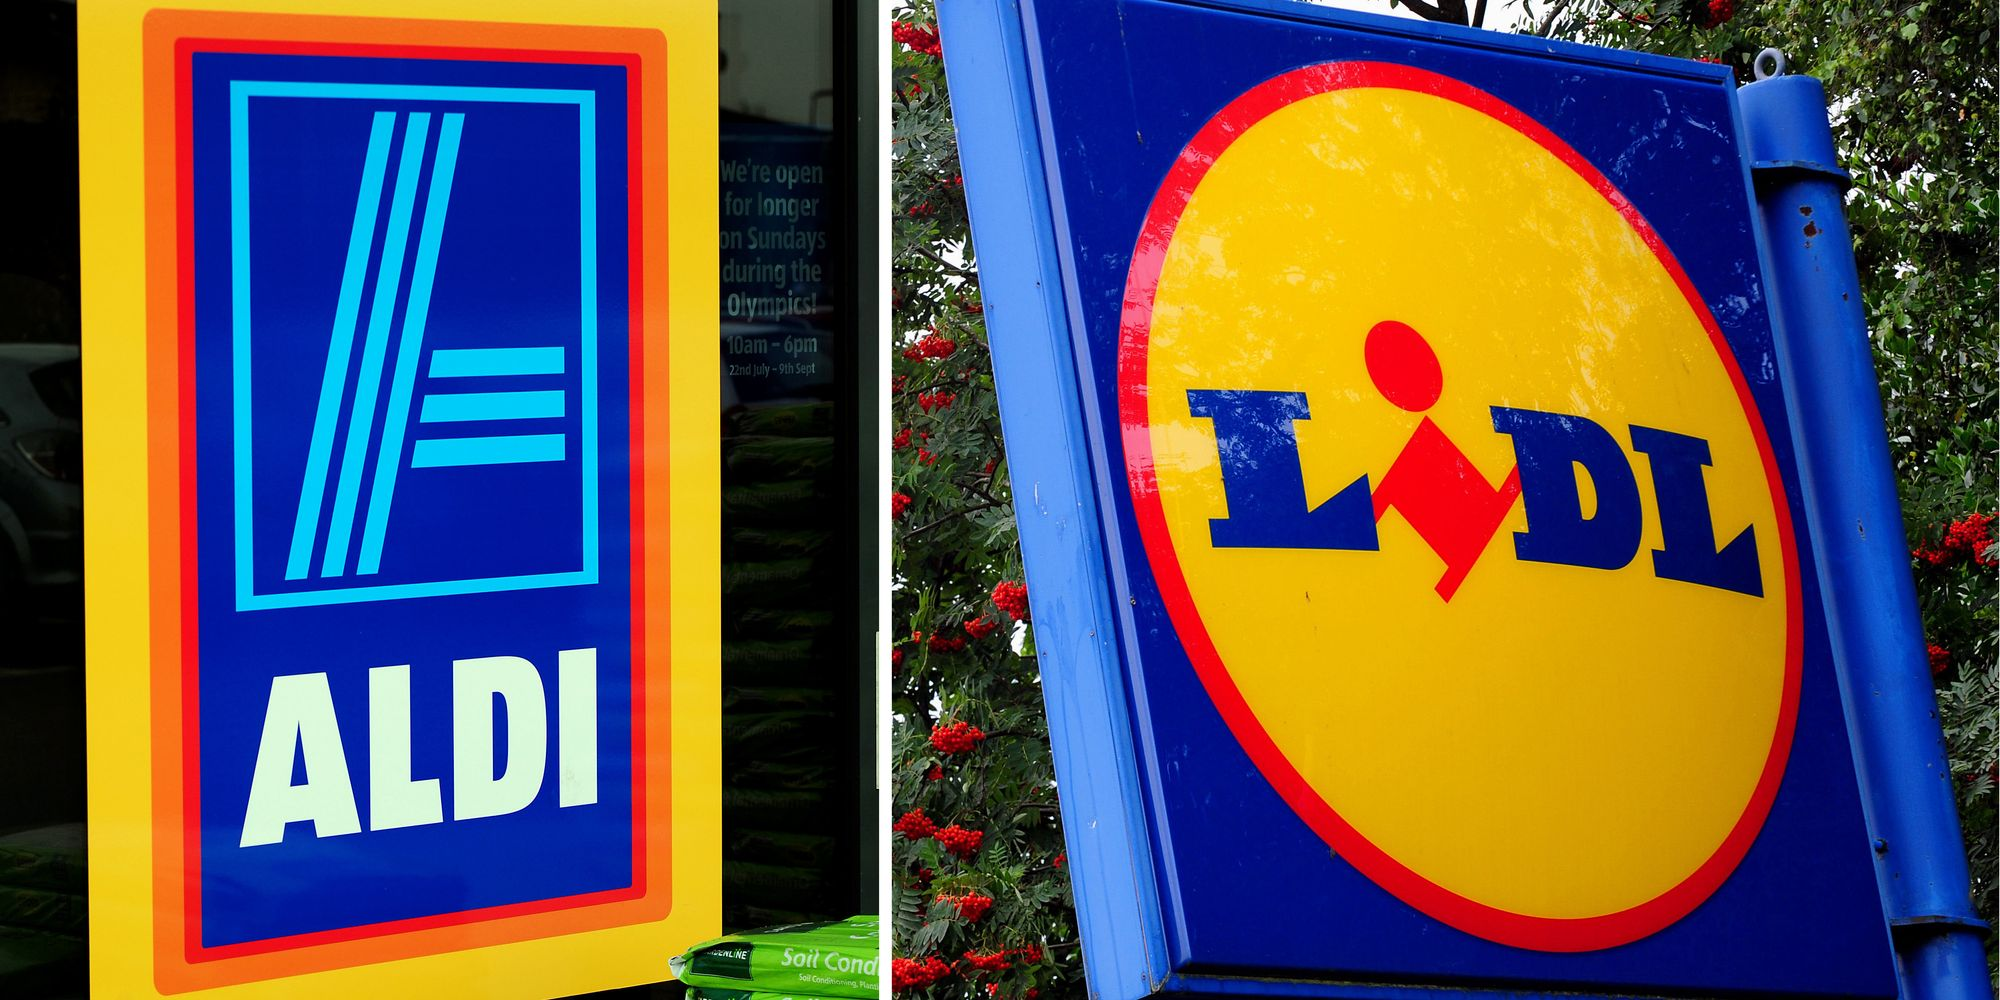 lidl easter opening times 2017 and hours for aldi this. Black Bedroom Furniture Sets. Home Design Ideas